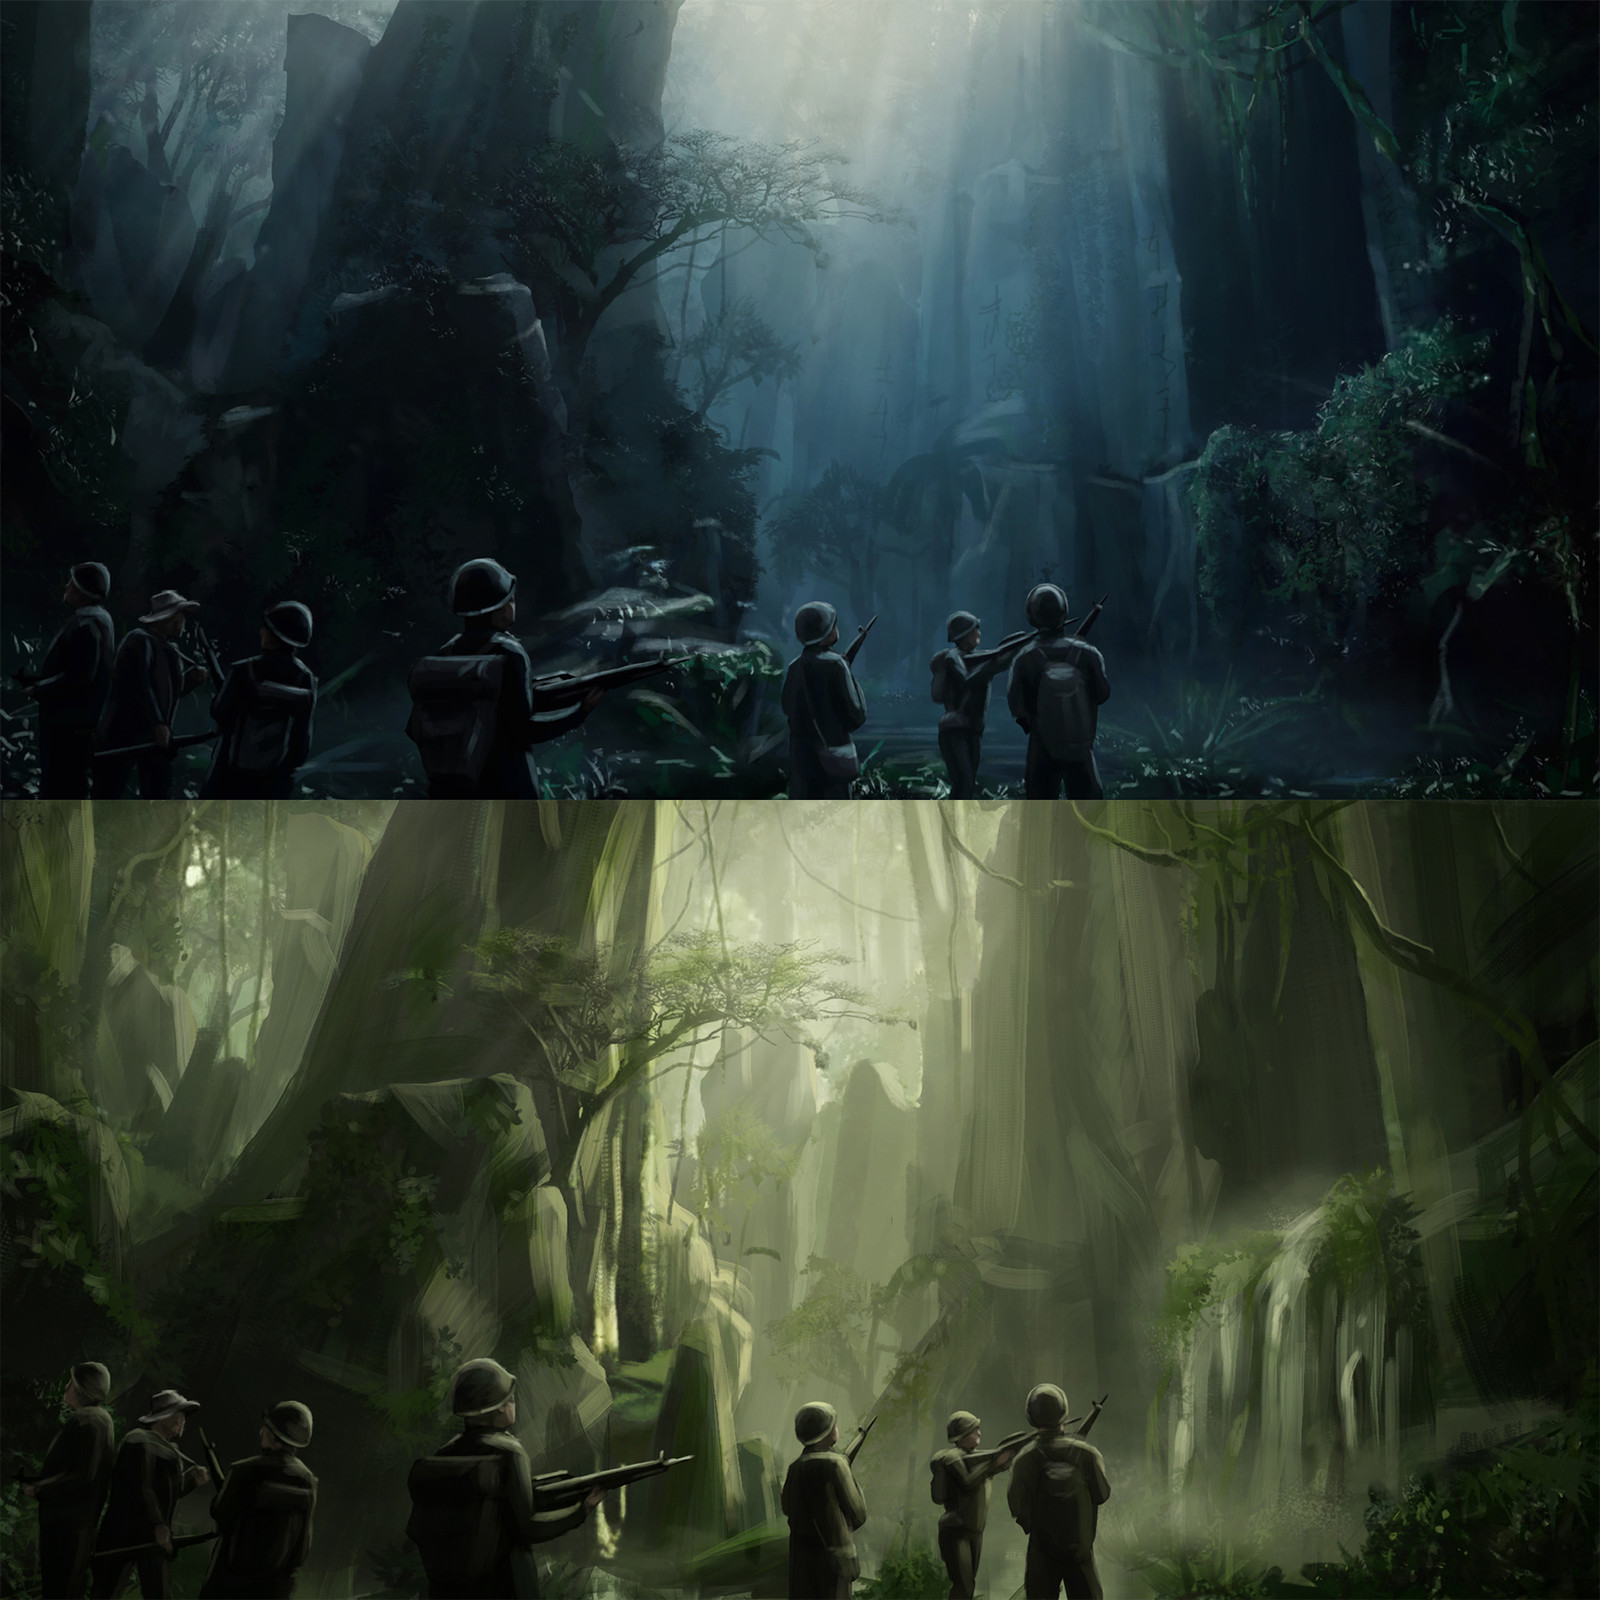 Two variations of the sketch with different cinematic light and colors